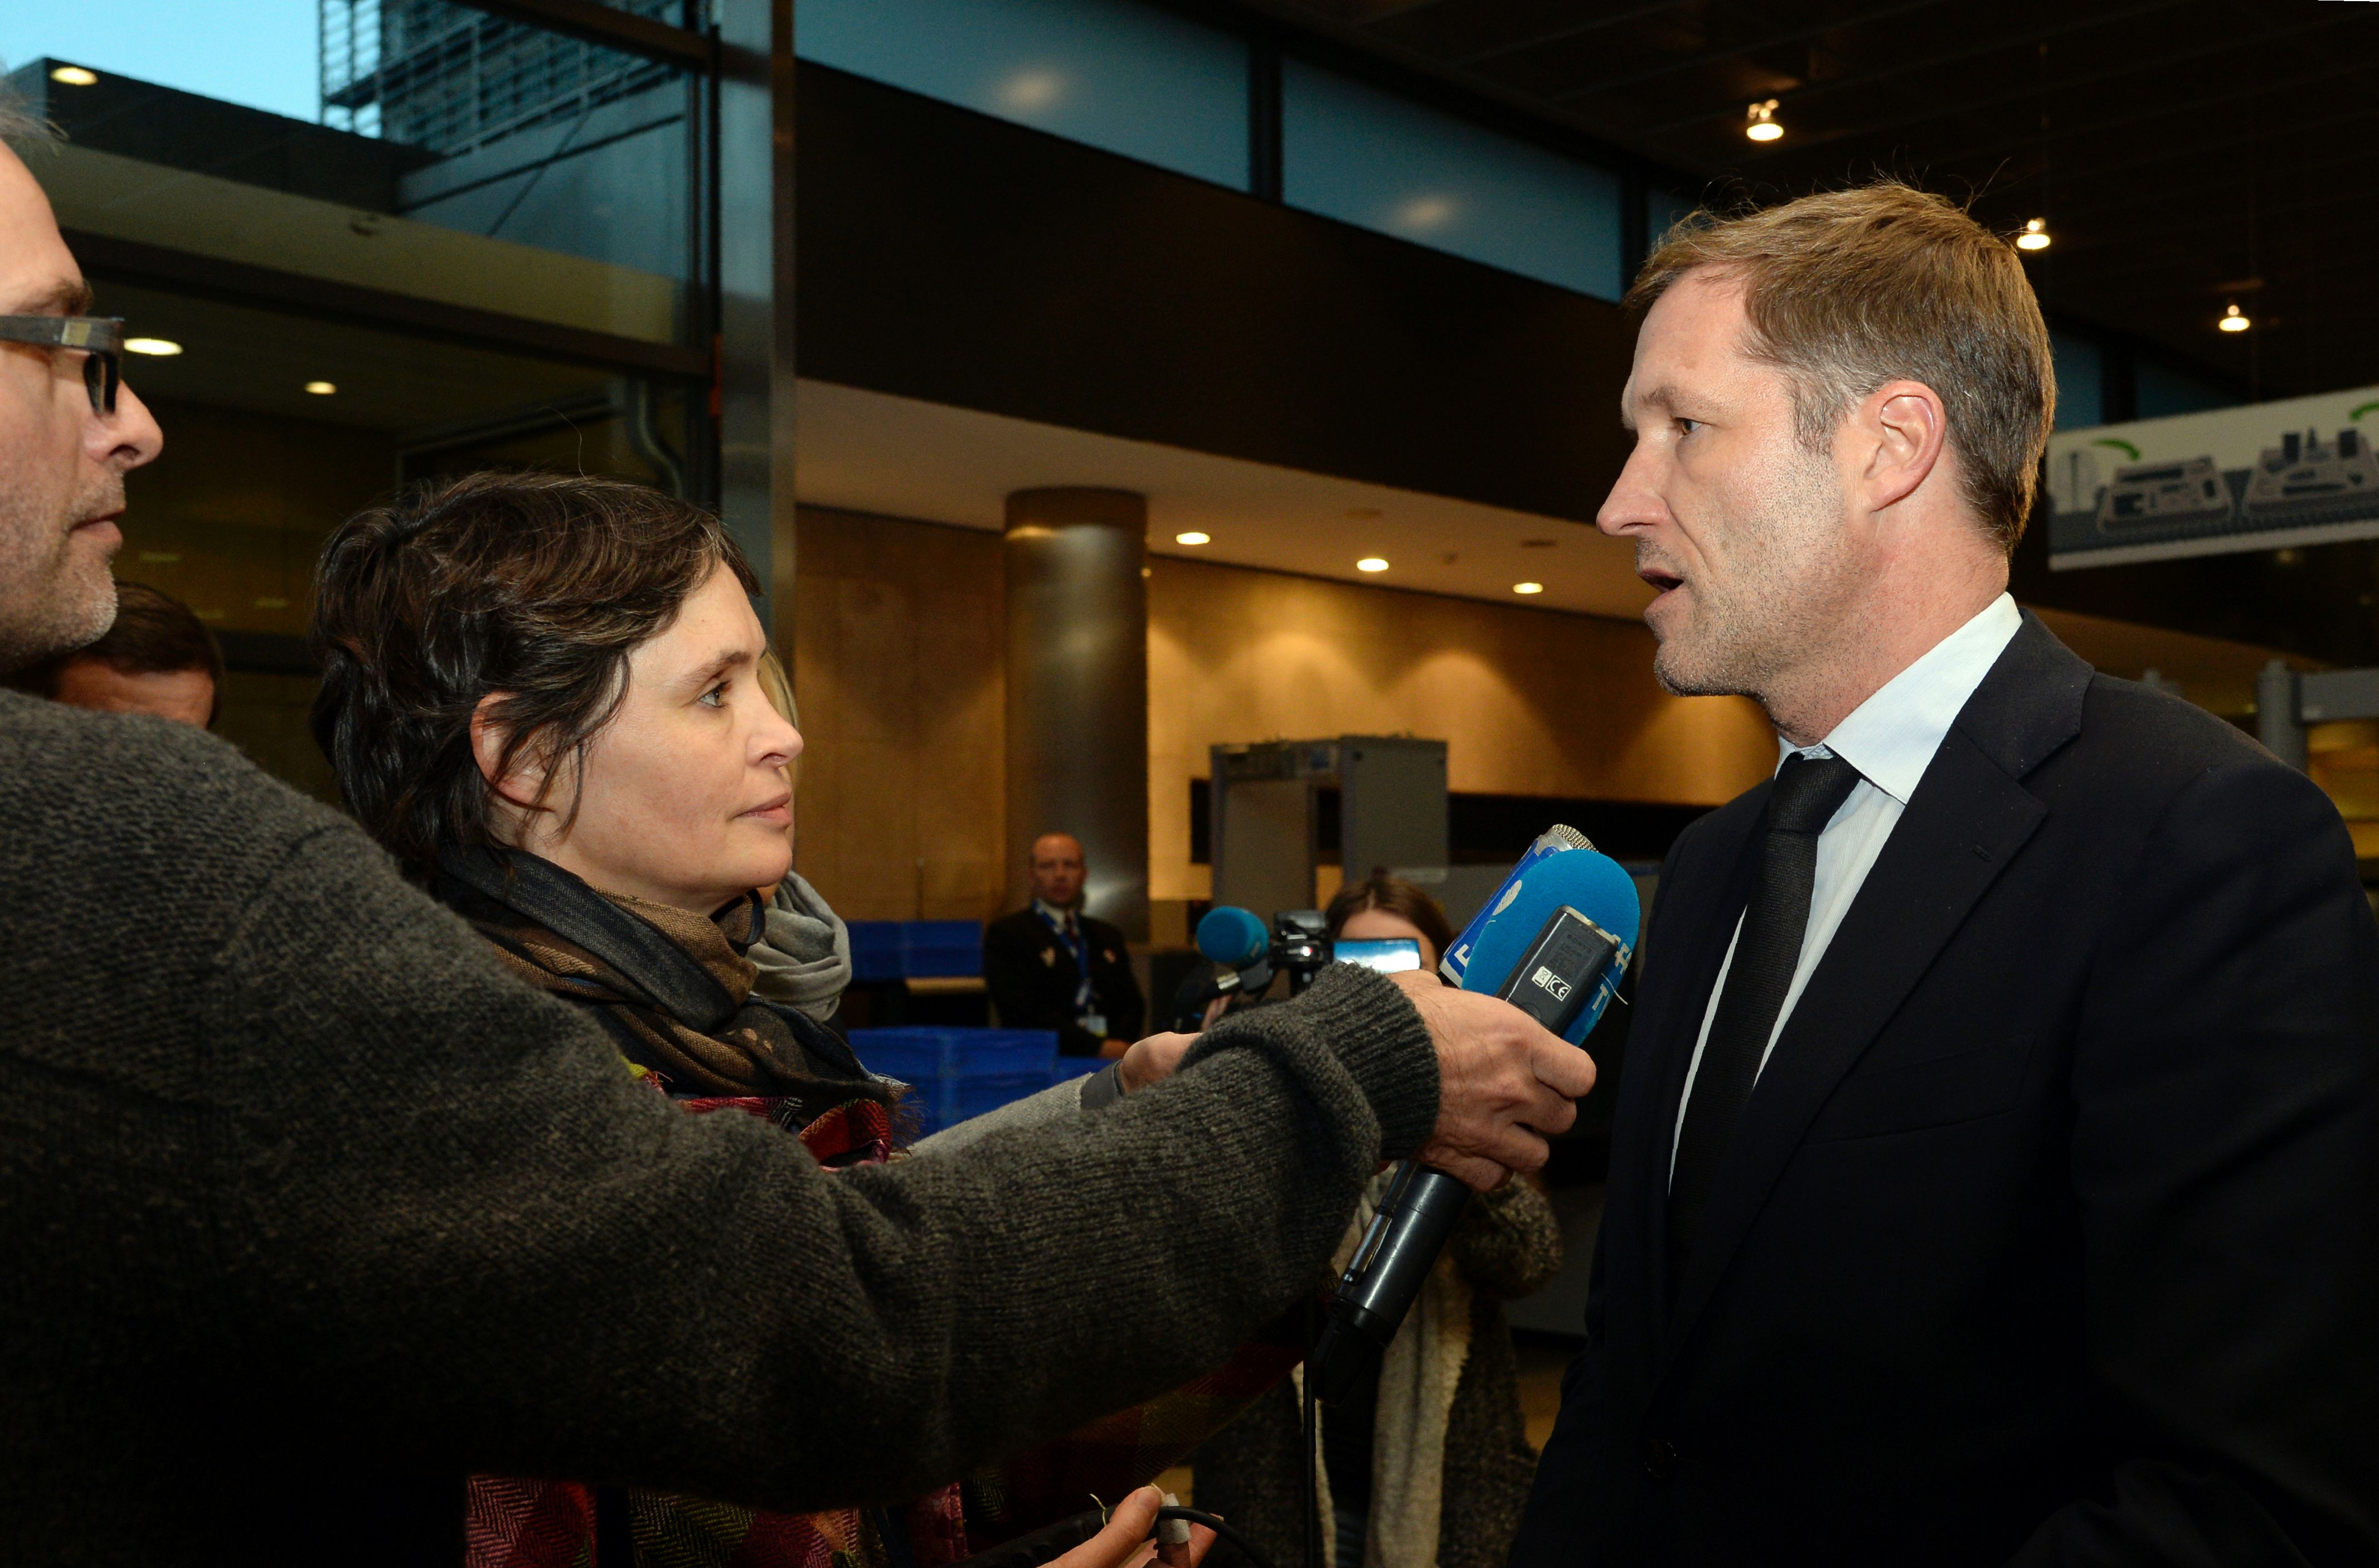 The premier of Belgium's French-speaking Walloon region, Paul Magnette, talks to reporters following his meeting with the European Union Commissioner for Trade at the European Union Commission headquarters in Brussels on Wednesday. | AFP-JIJI